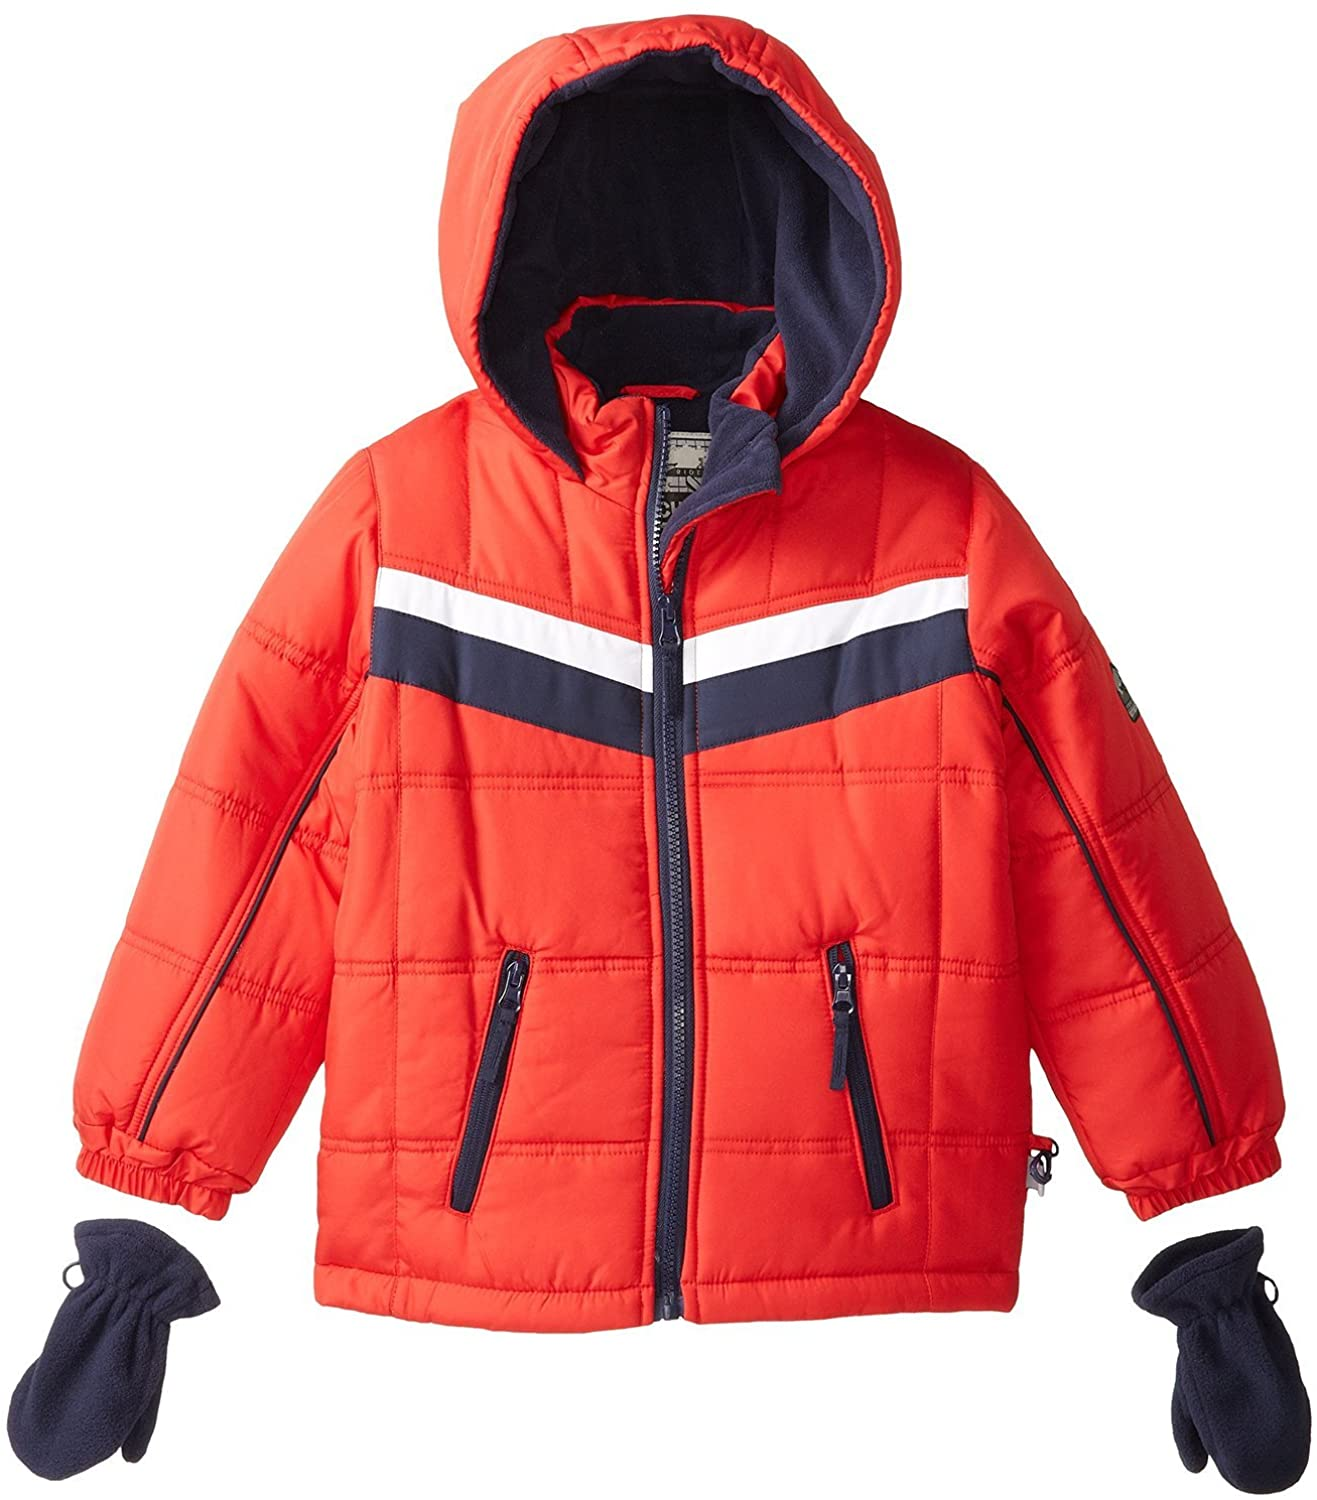 Rothschild Little Boys Quilted Fleece Lined Winter Puffer Bubble Coat for Skiing - Red (Size 2T)